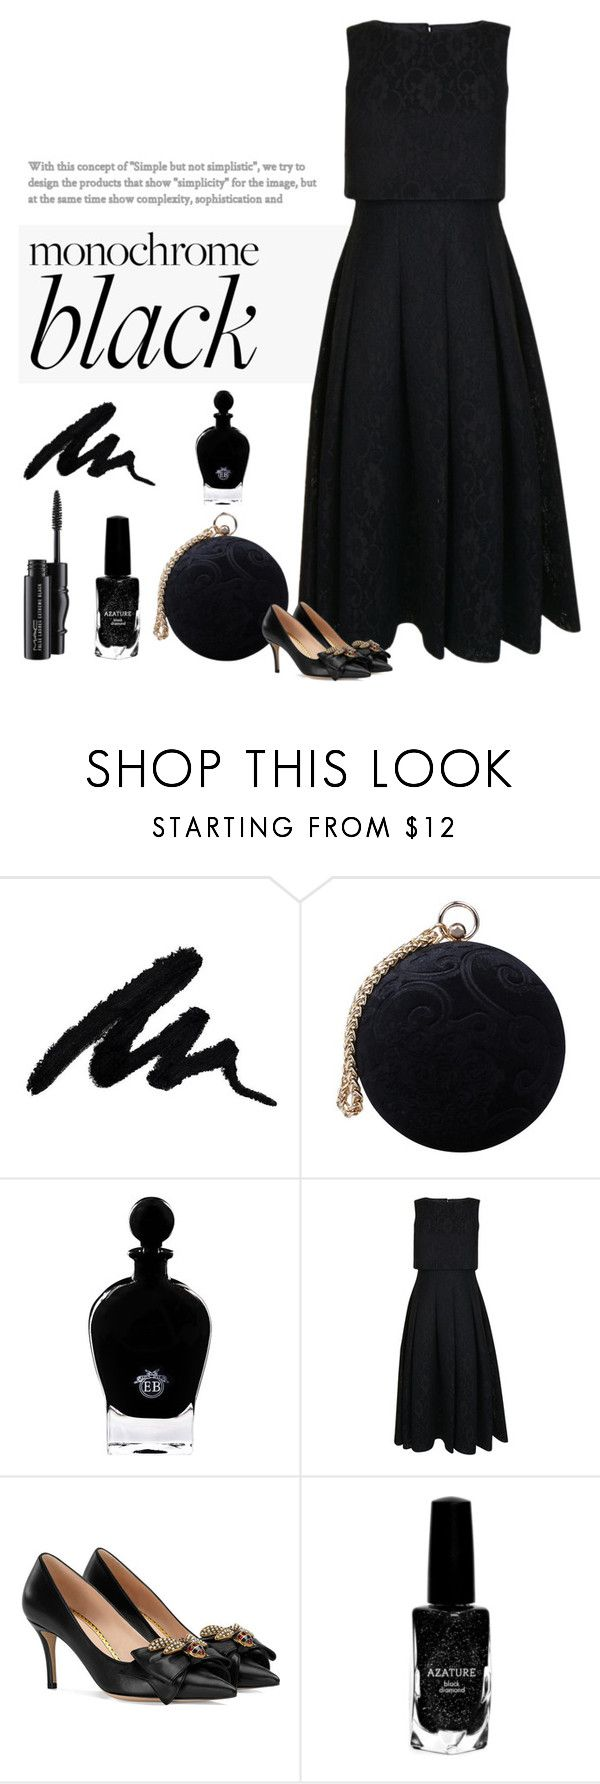 """My Black Dress"" by patricia-dimmick ❤ liked on Polyvore featuring Carvela, EB Florals, Ted Baker, Gucci, Azature, MAC Cosmetics and allblackoutfit"